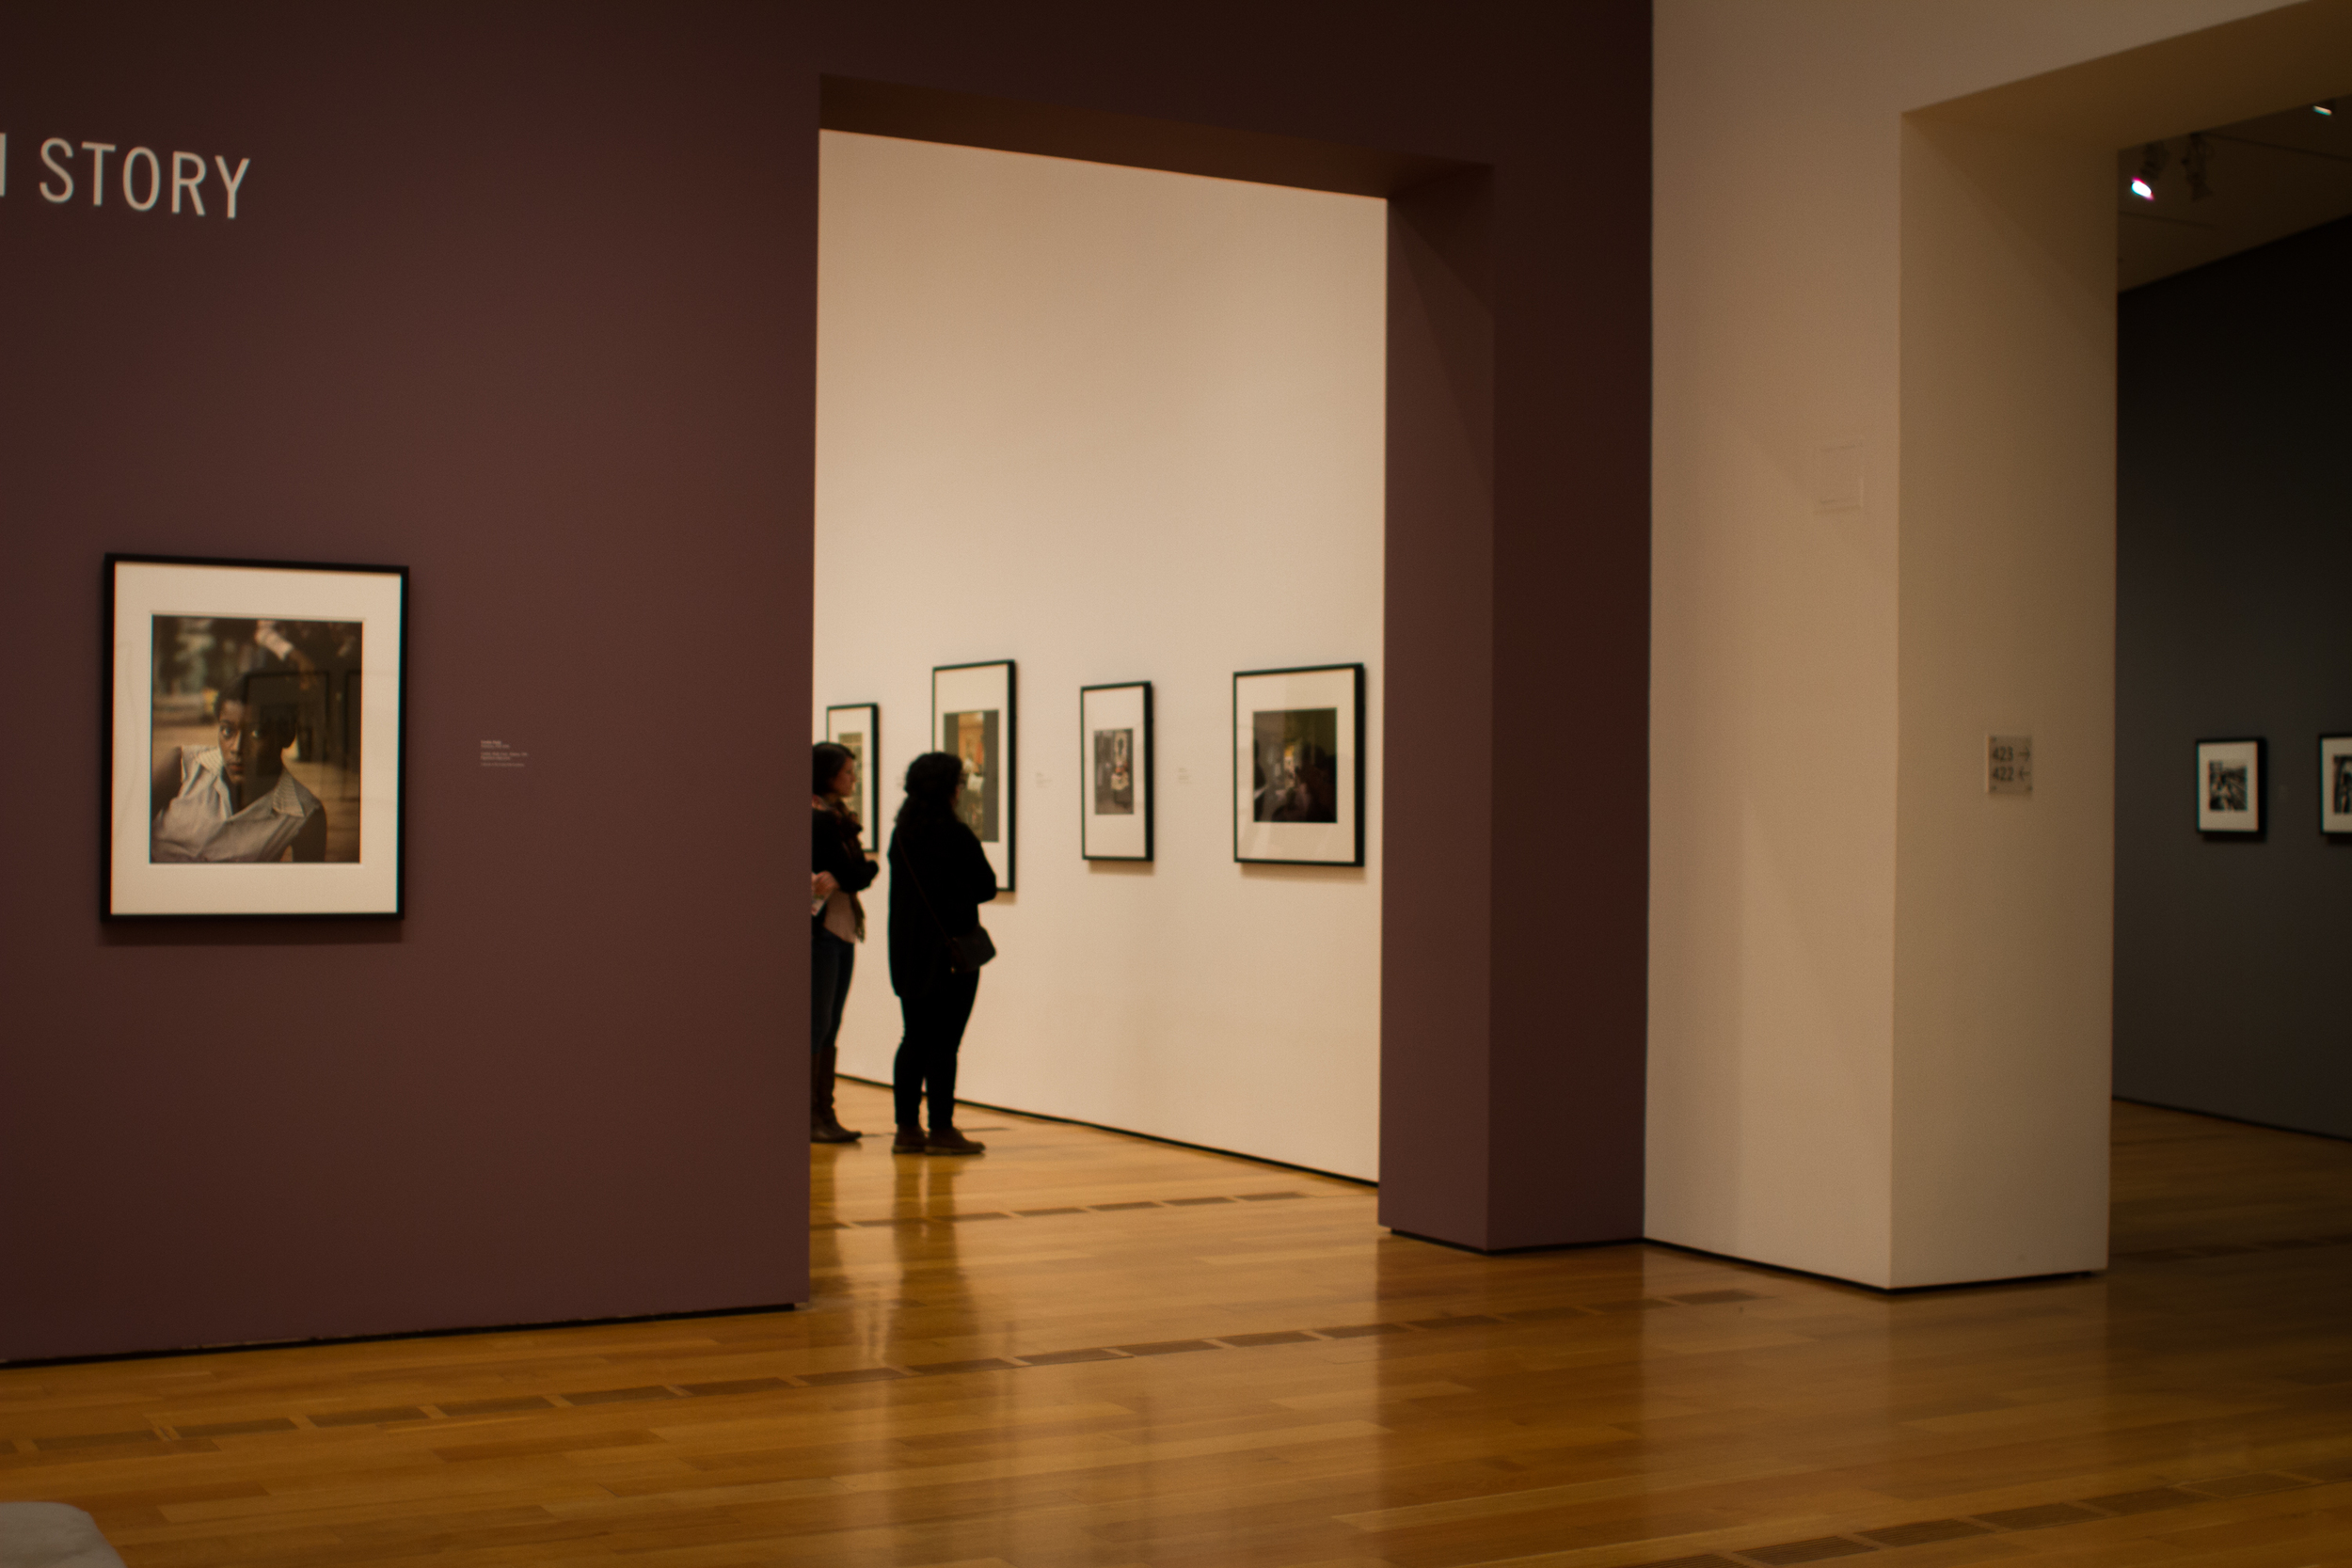 Photo taken at the High Museum in Atlanta by Abby Whisler